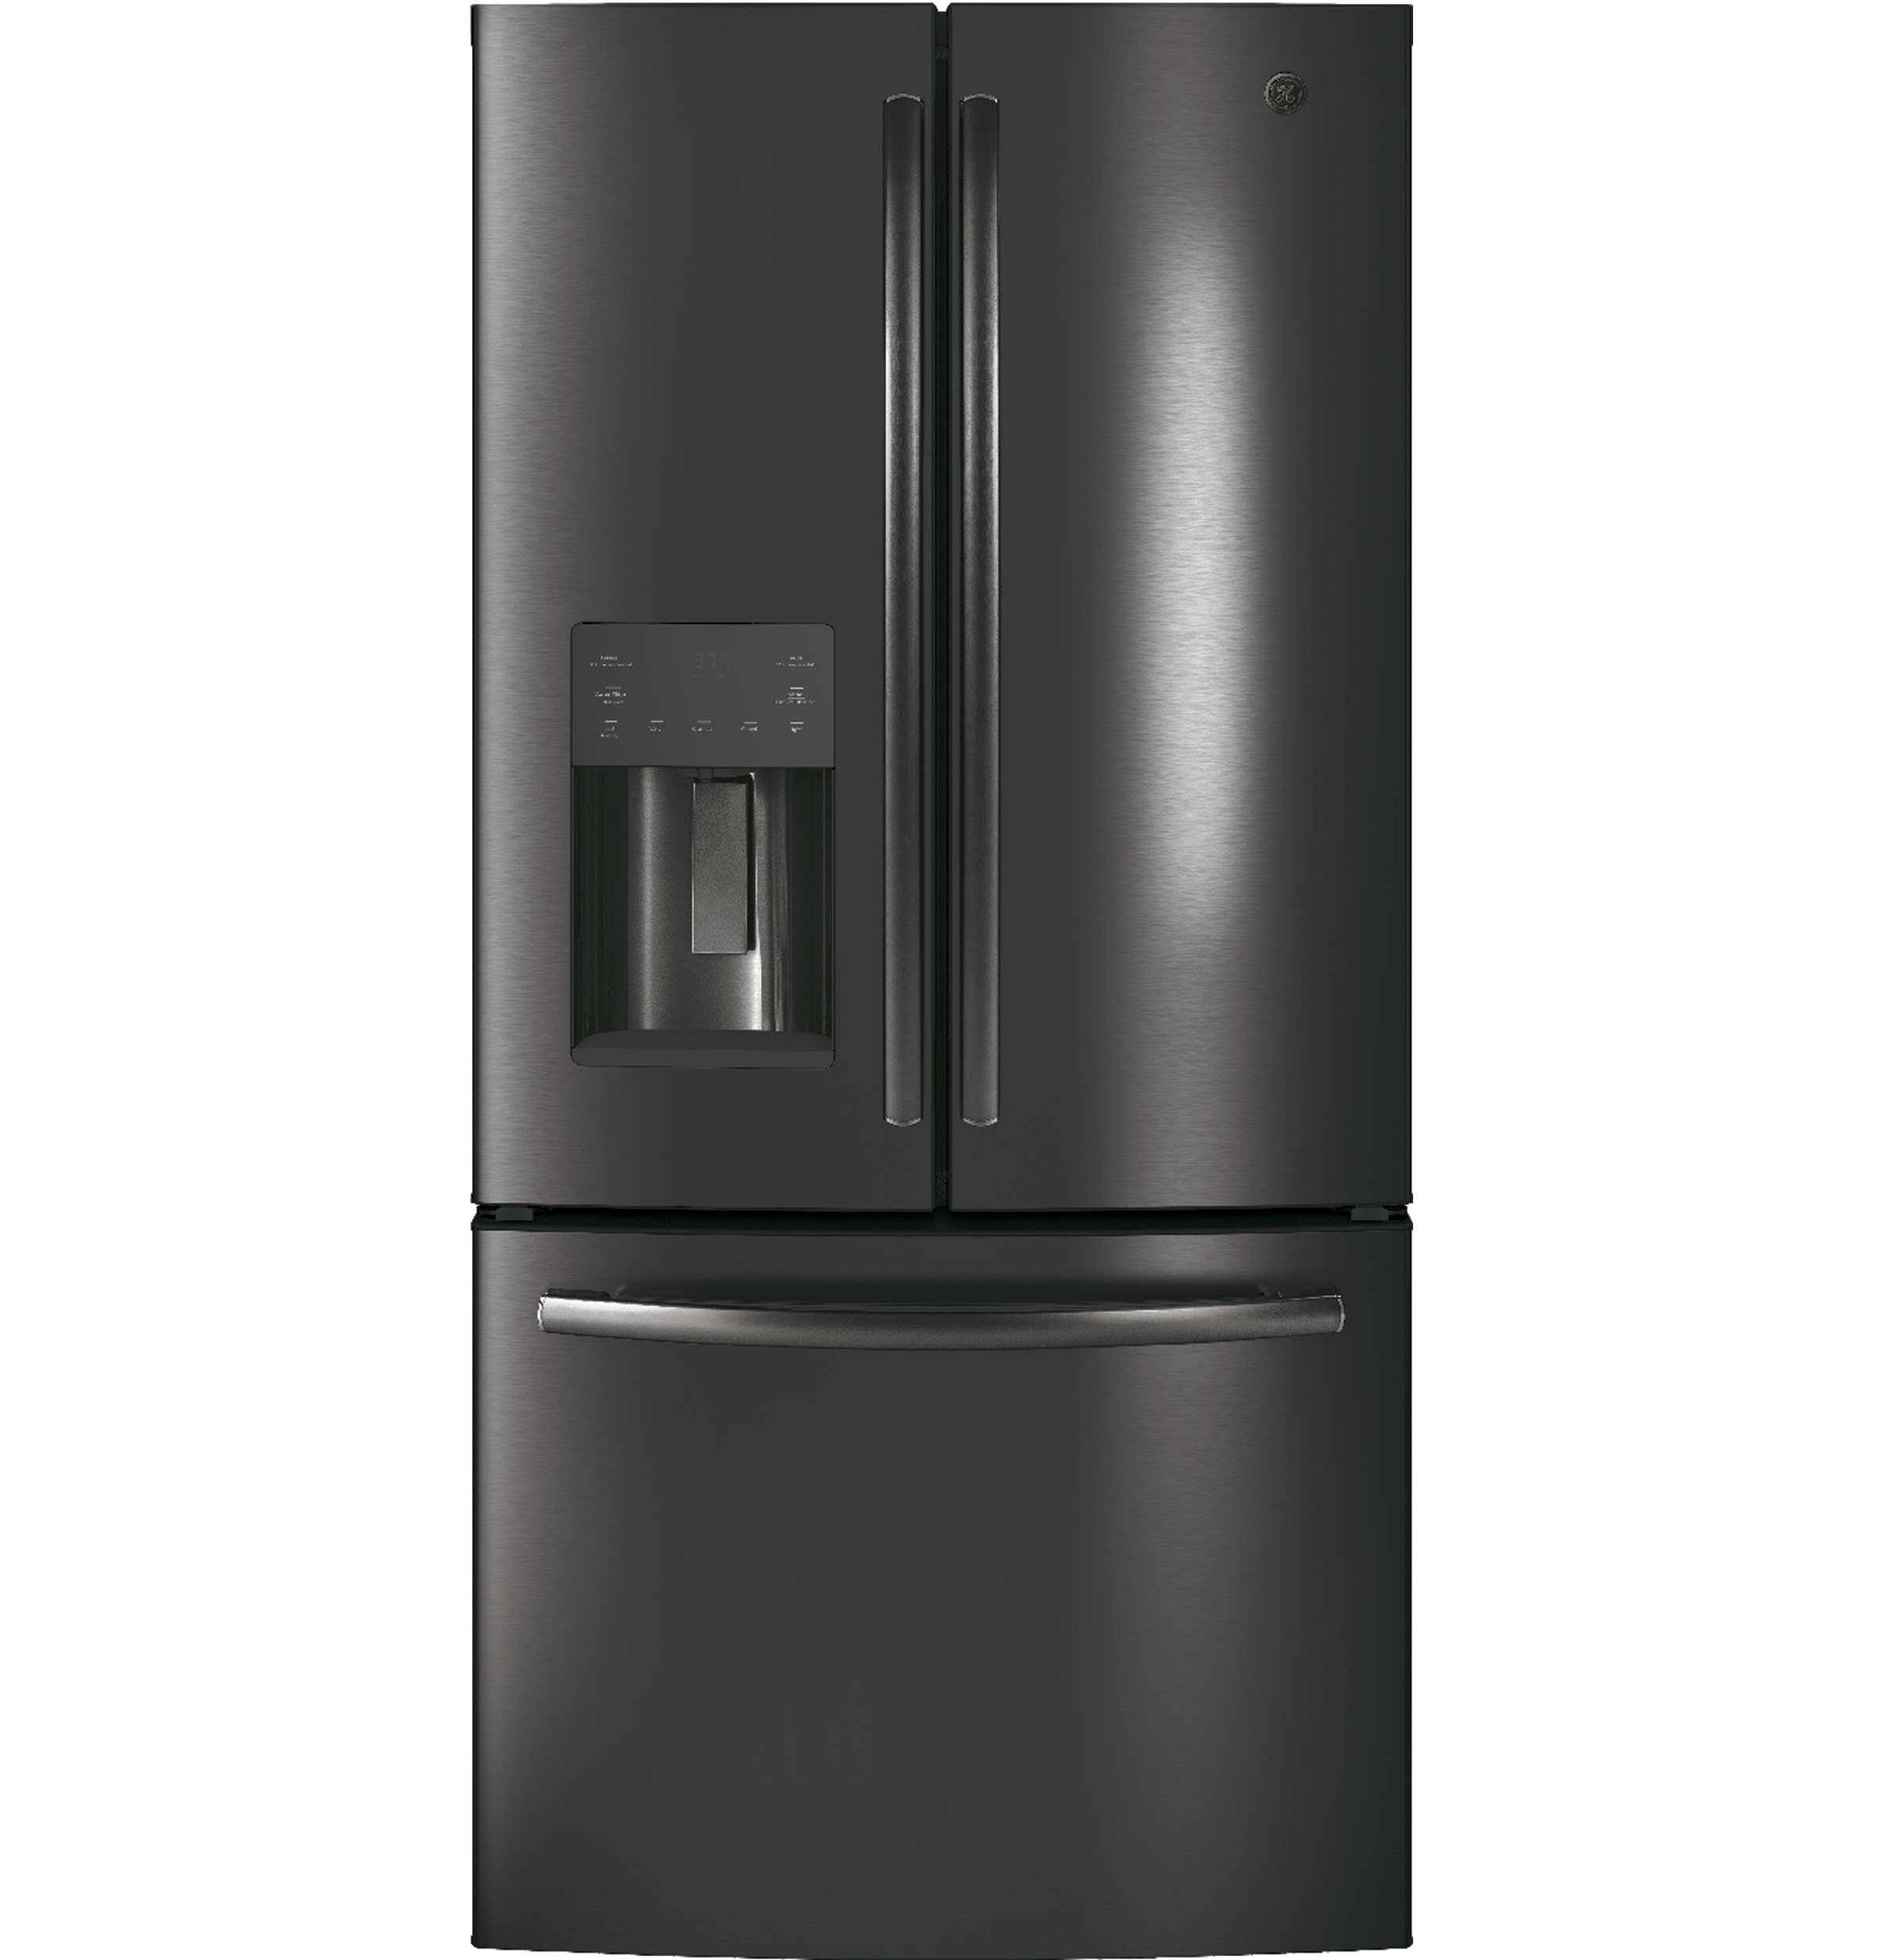 GE GE® ENERGY STAR® 17.5 Cu. Ft. Counter-Depth French-Door Refrigerator